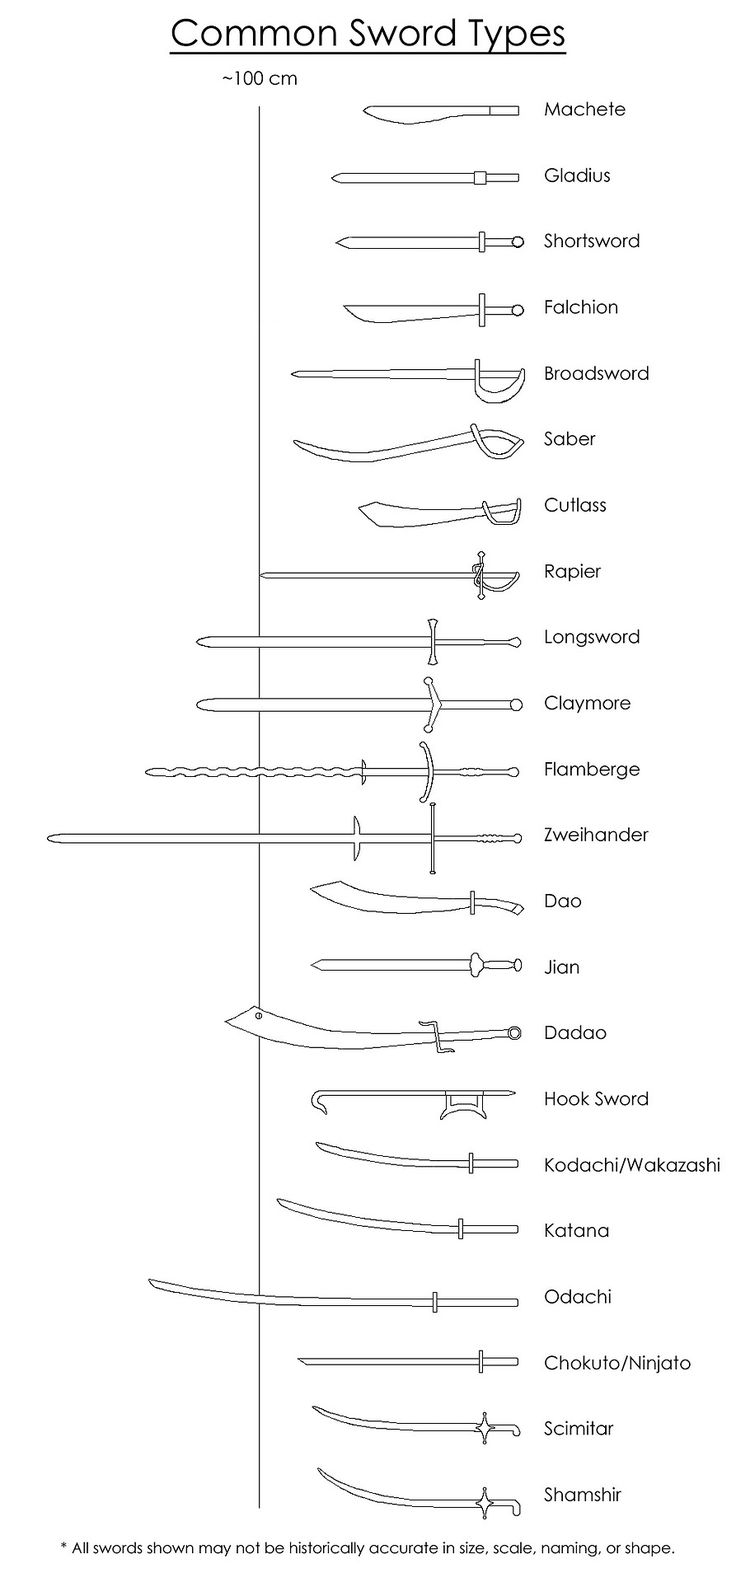 Just a little run down on common sword types-